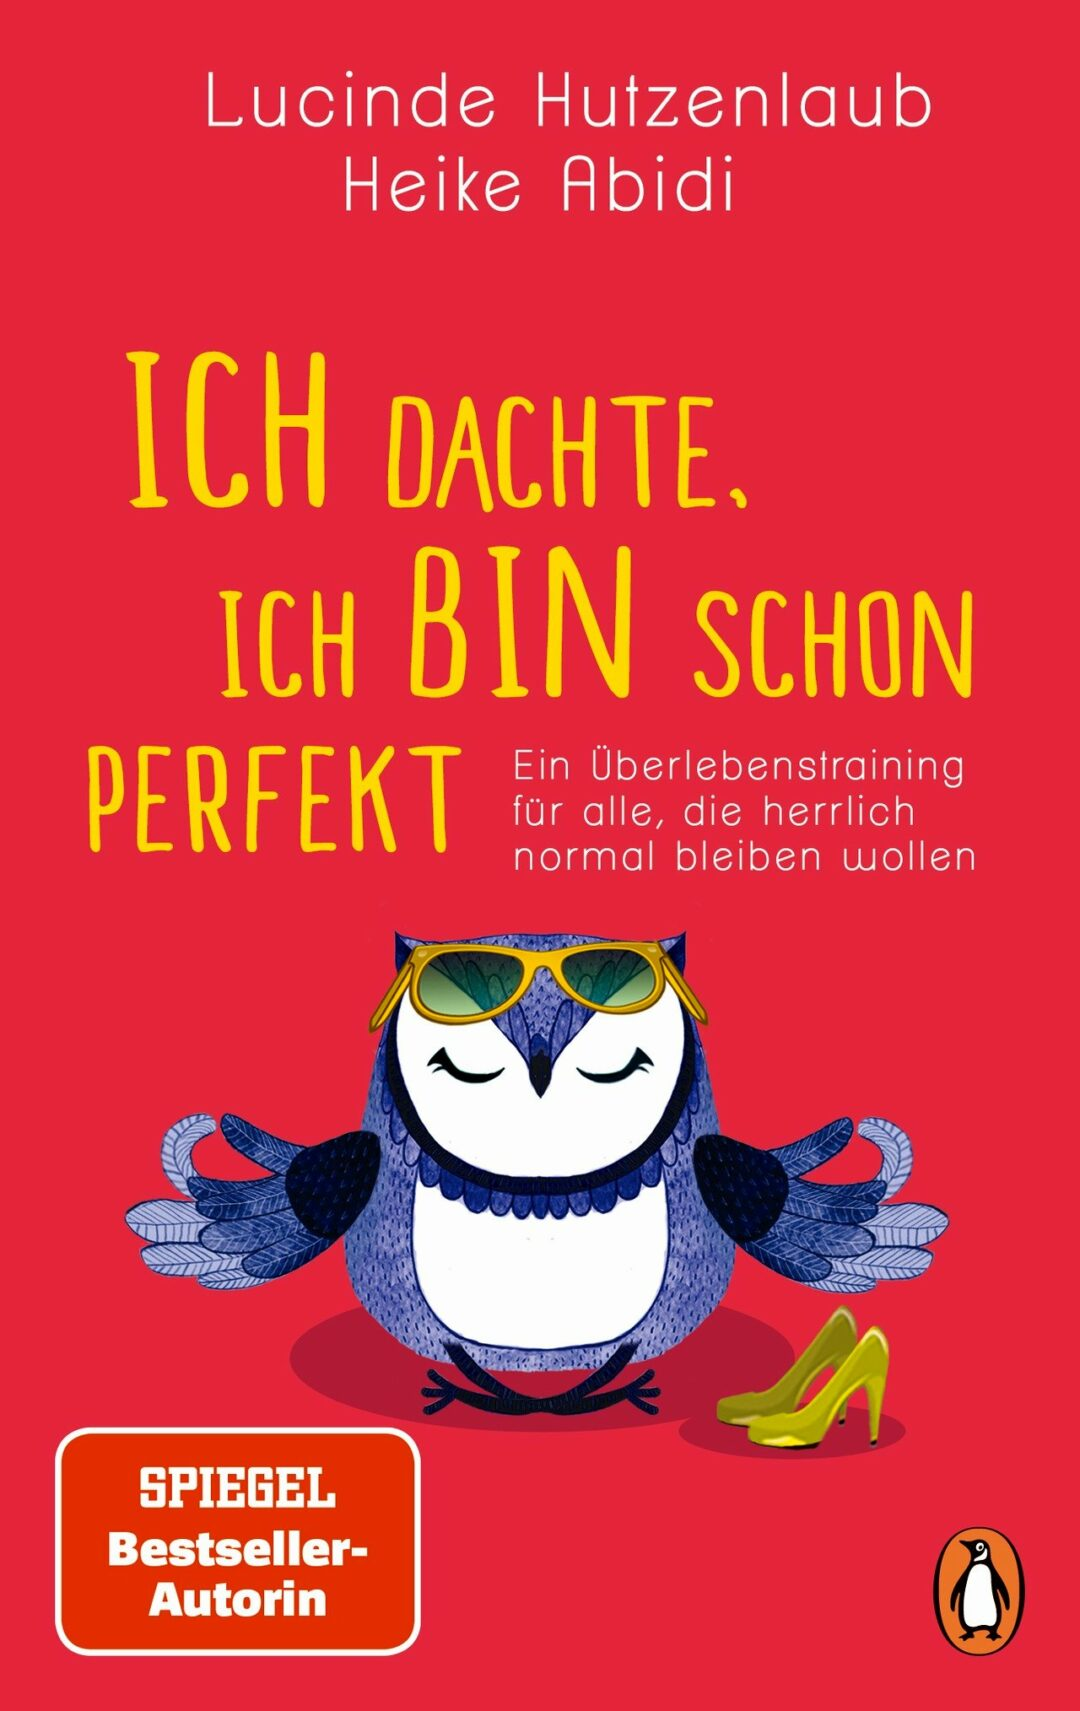 Buchcover rot mit Eule